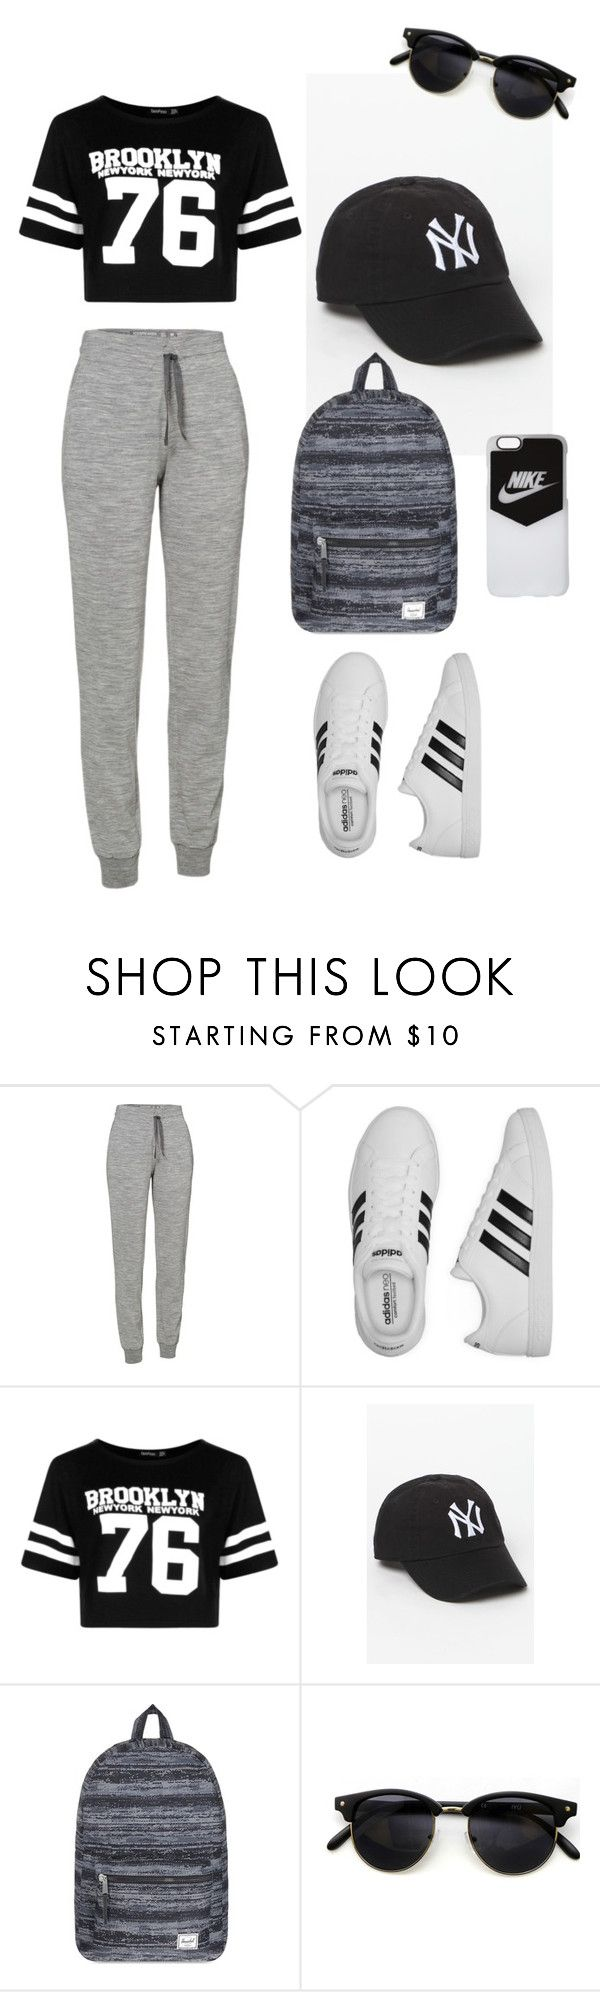 """*-*"" by safaa-as on Polyvore featuring mode, Icebreaker, adidas, Boohoo, American Needle, Herschel Supply Co. et NIKE"